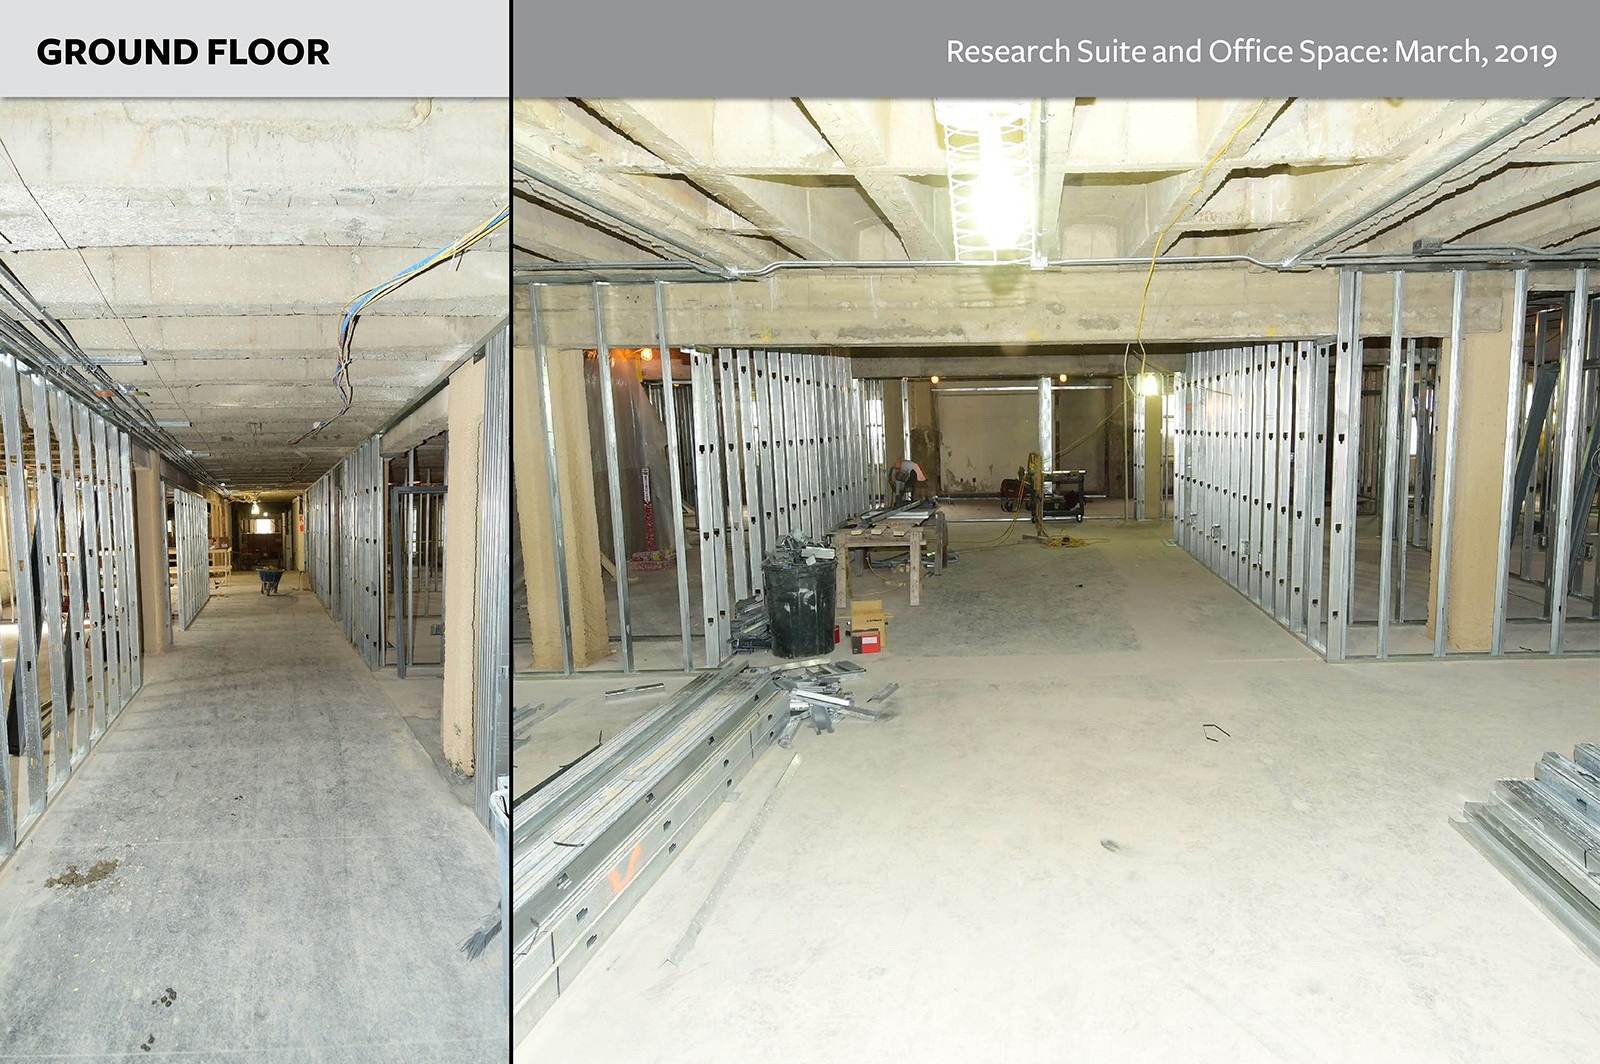 Ground Floor: Research Suite and Office Space as of March, 2019